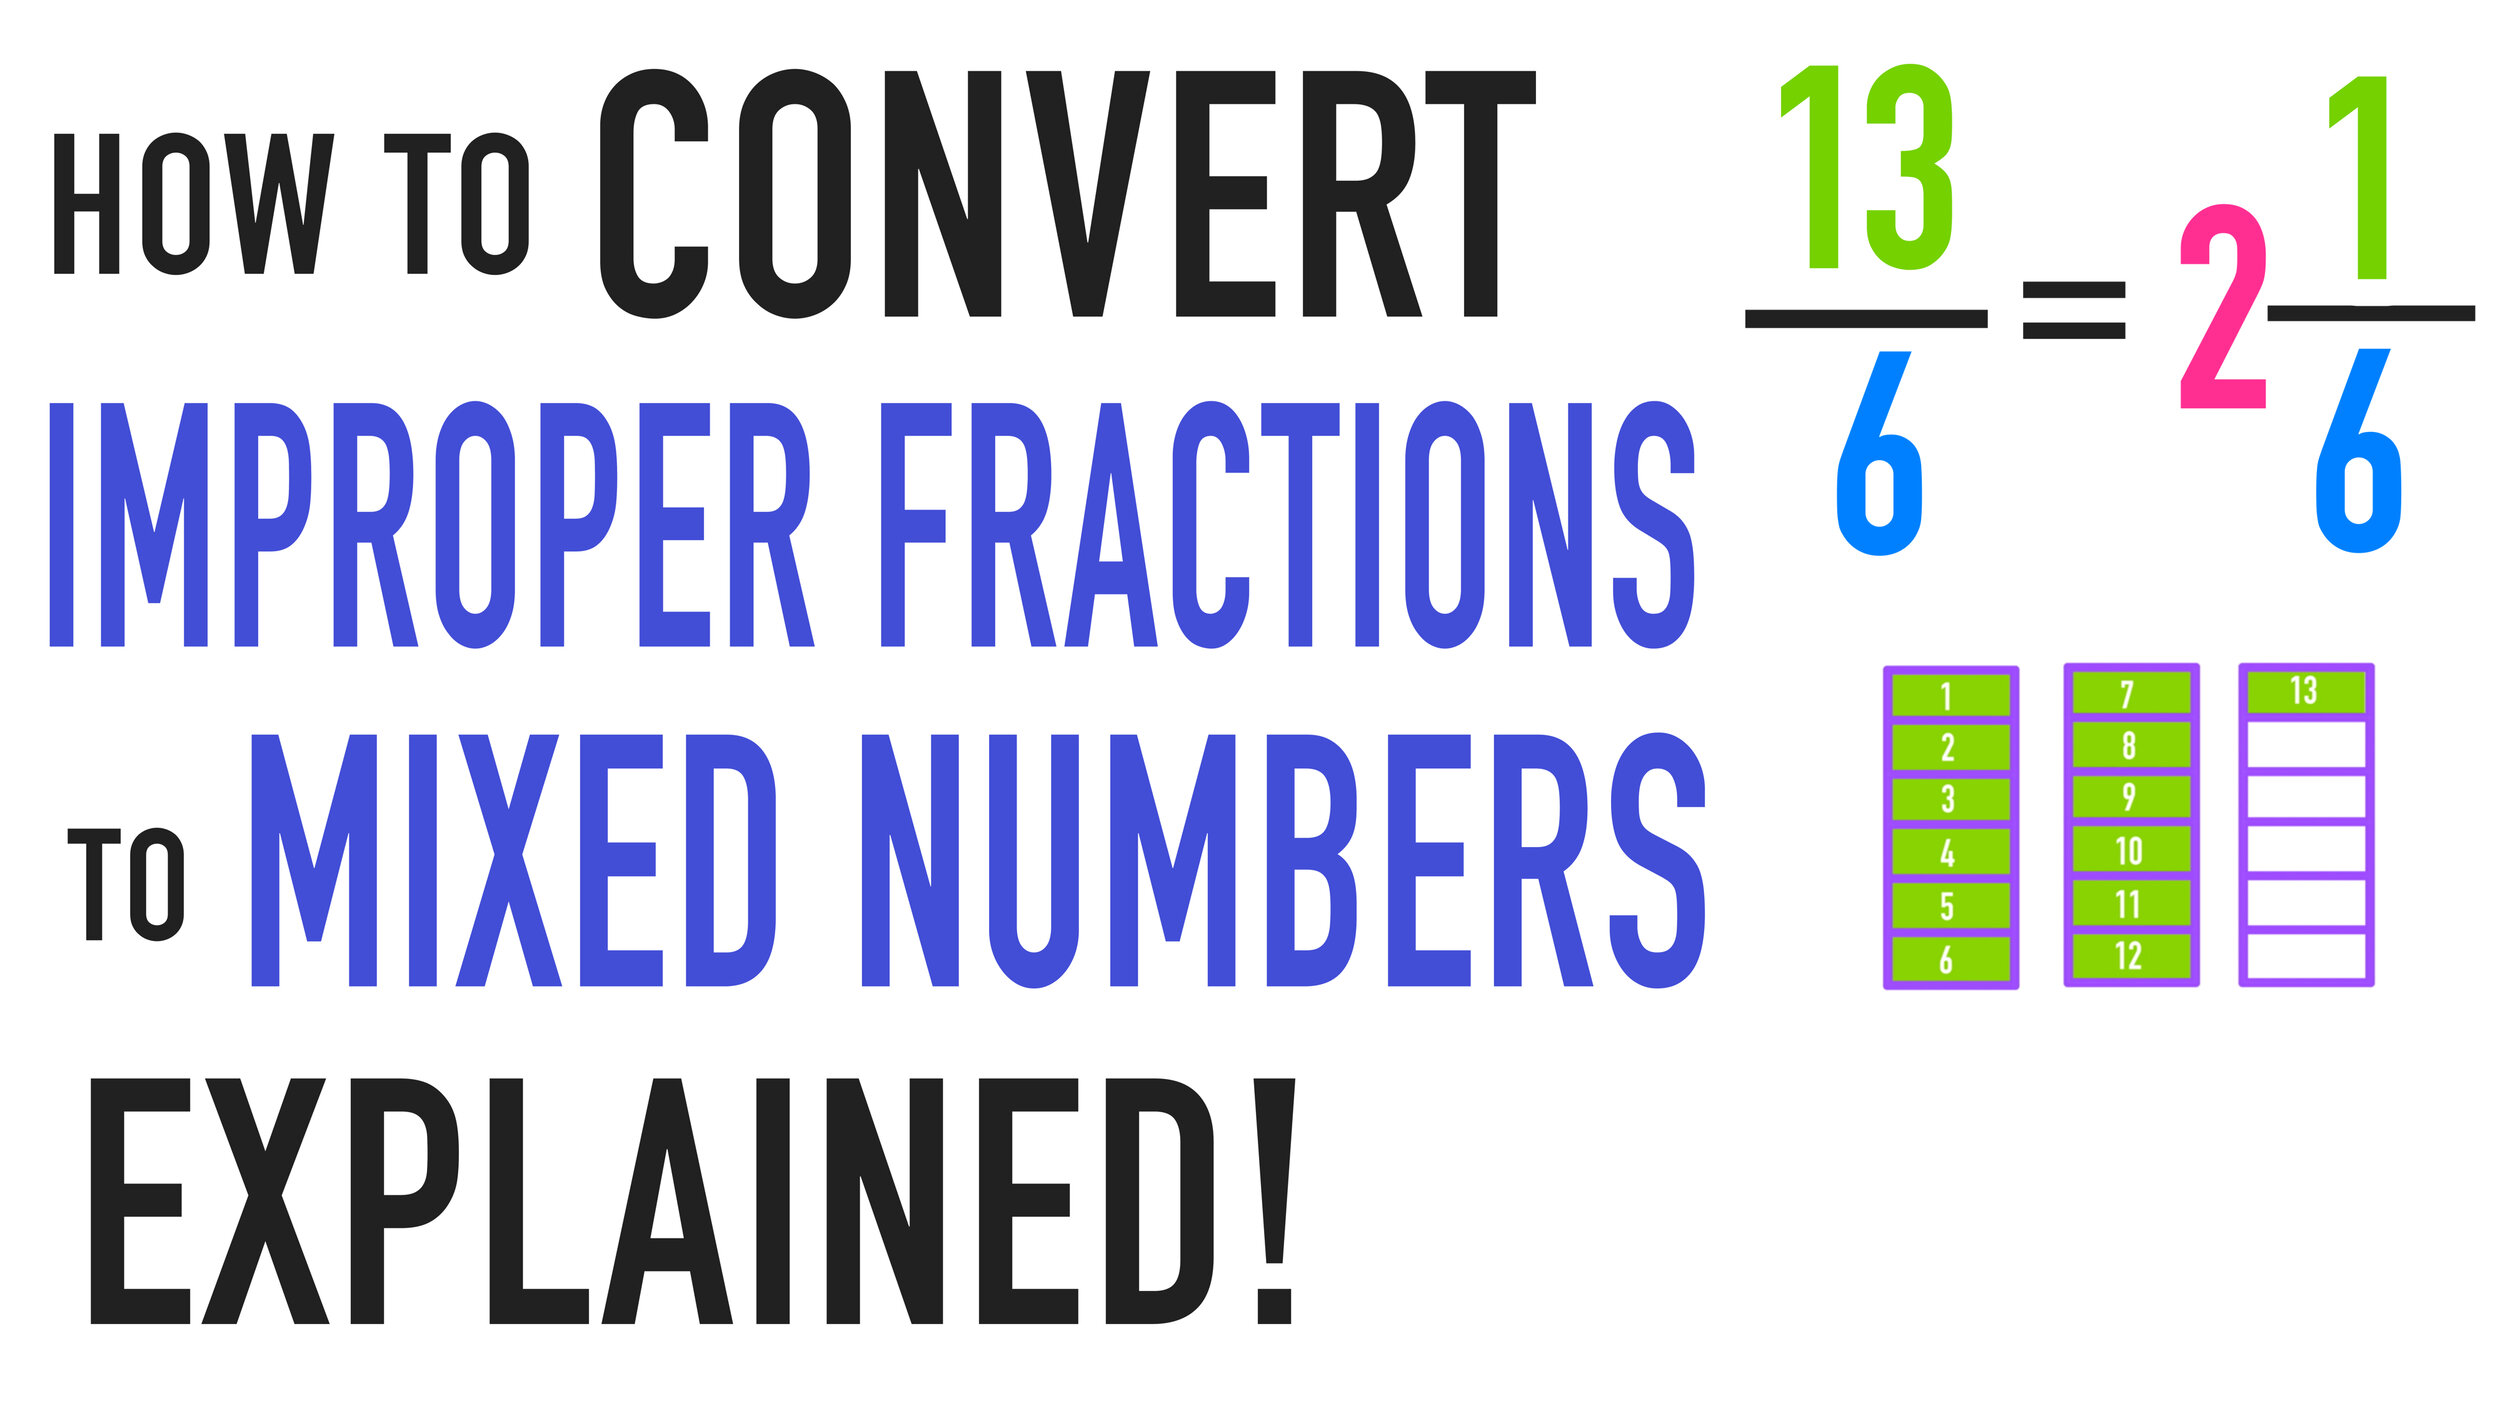 hight resolution of How to Convert Improper Fractions to Mixed Numbers Explained! — Mashup Math